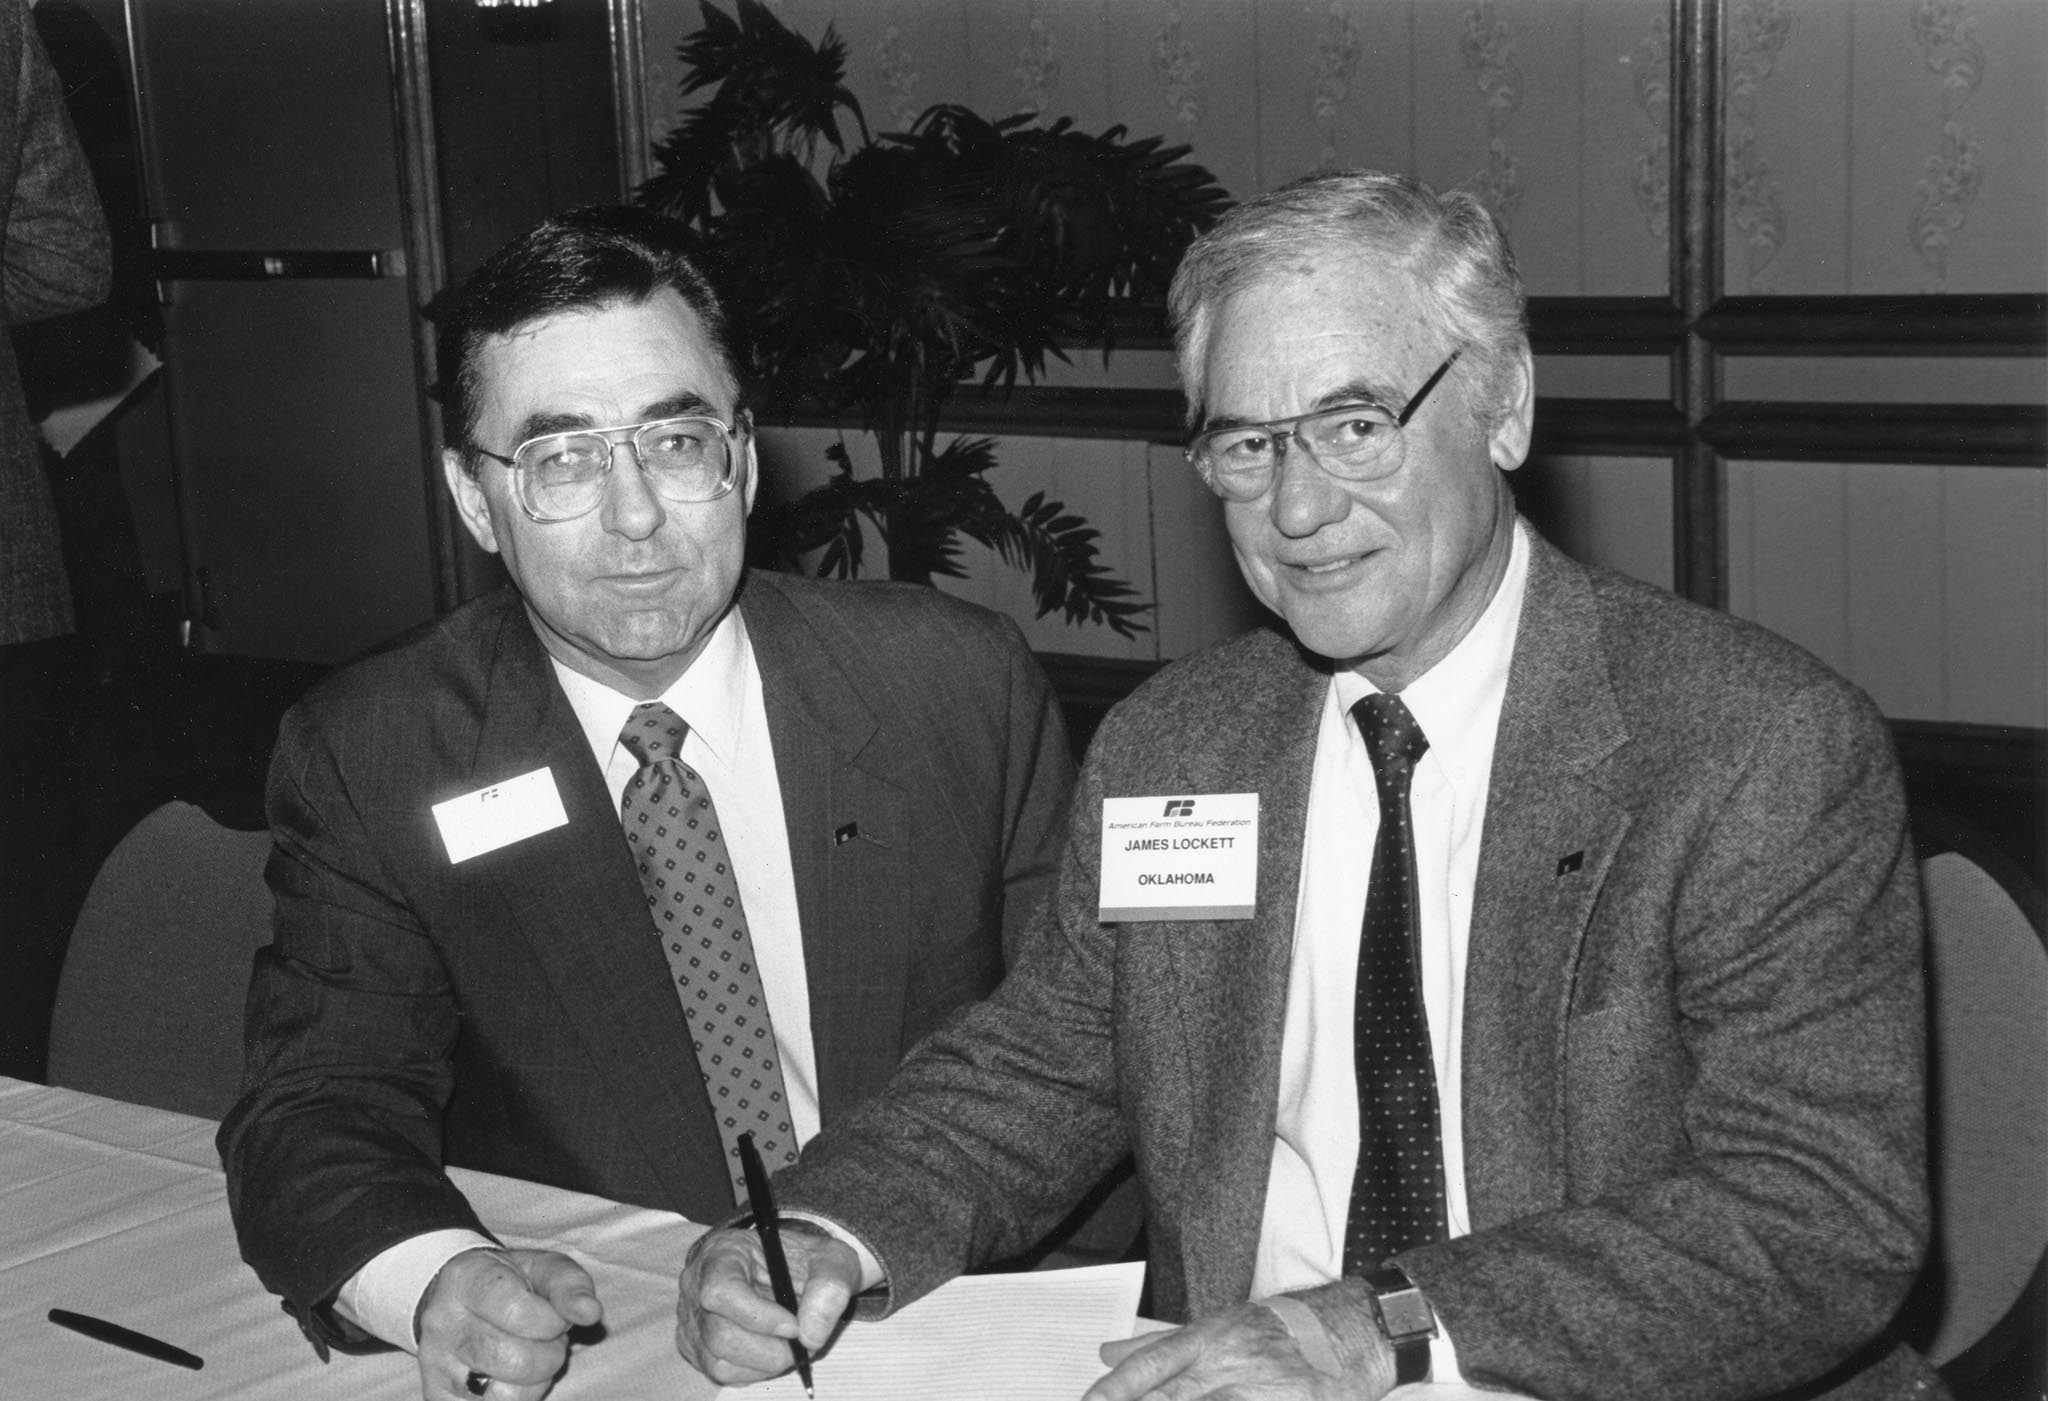 In this 1990 photo, James Lockett, OKFB President (right), pictured with American Farm Bureau Federation President Dean Kleckner, signs a Farm Bureau petition favoring reduction of the capital gains tax.